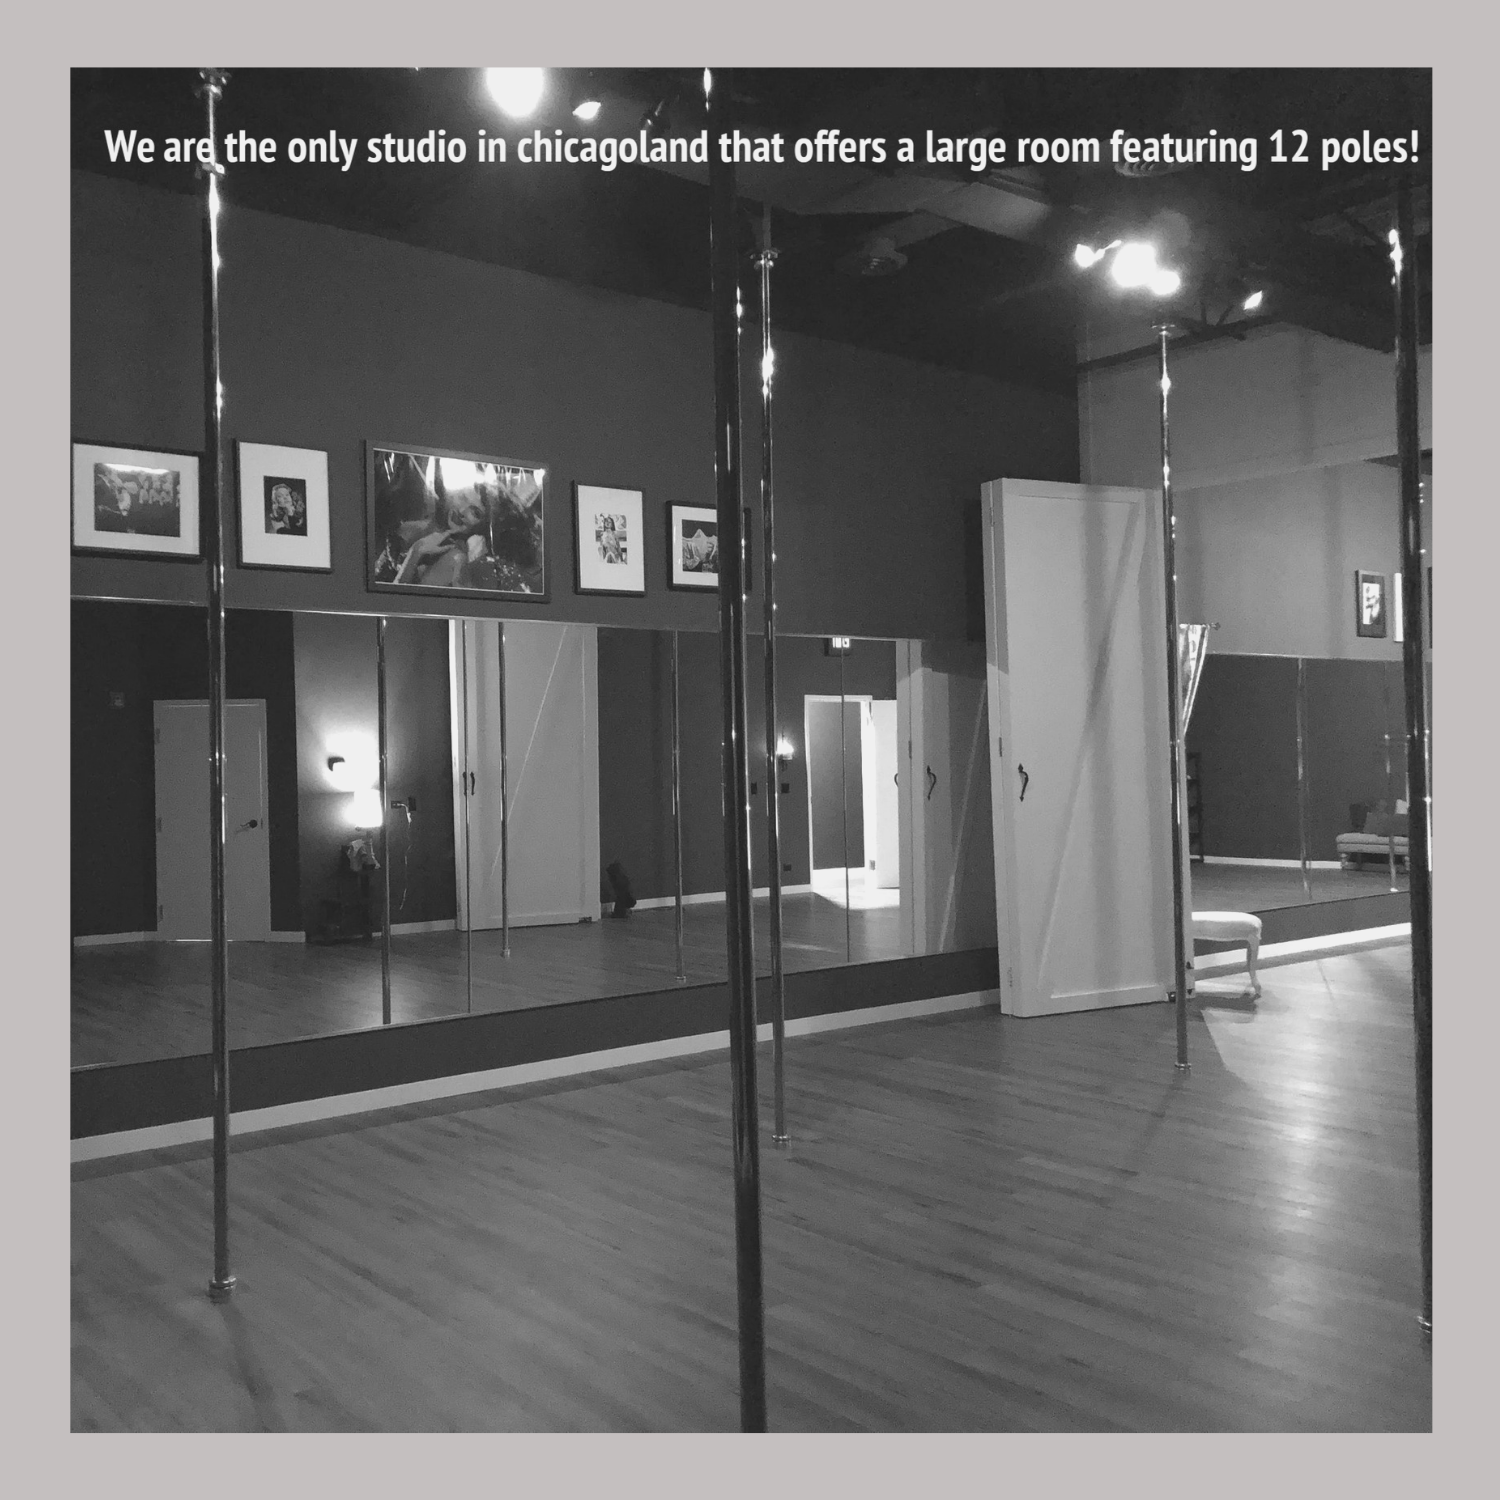 Please note that we will only open the connector doors providing 2 rooms and 12 poles for large parties.